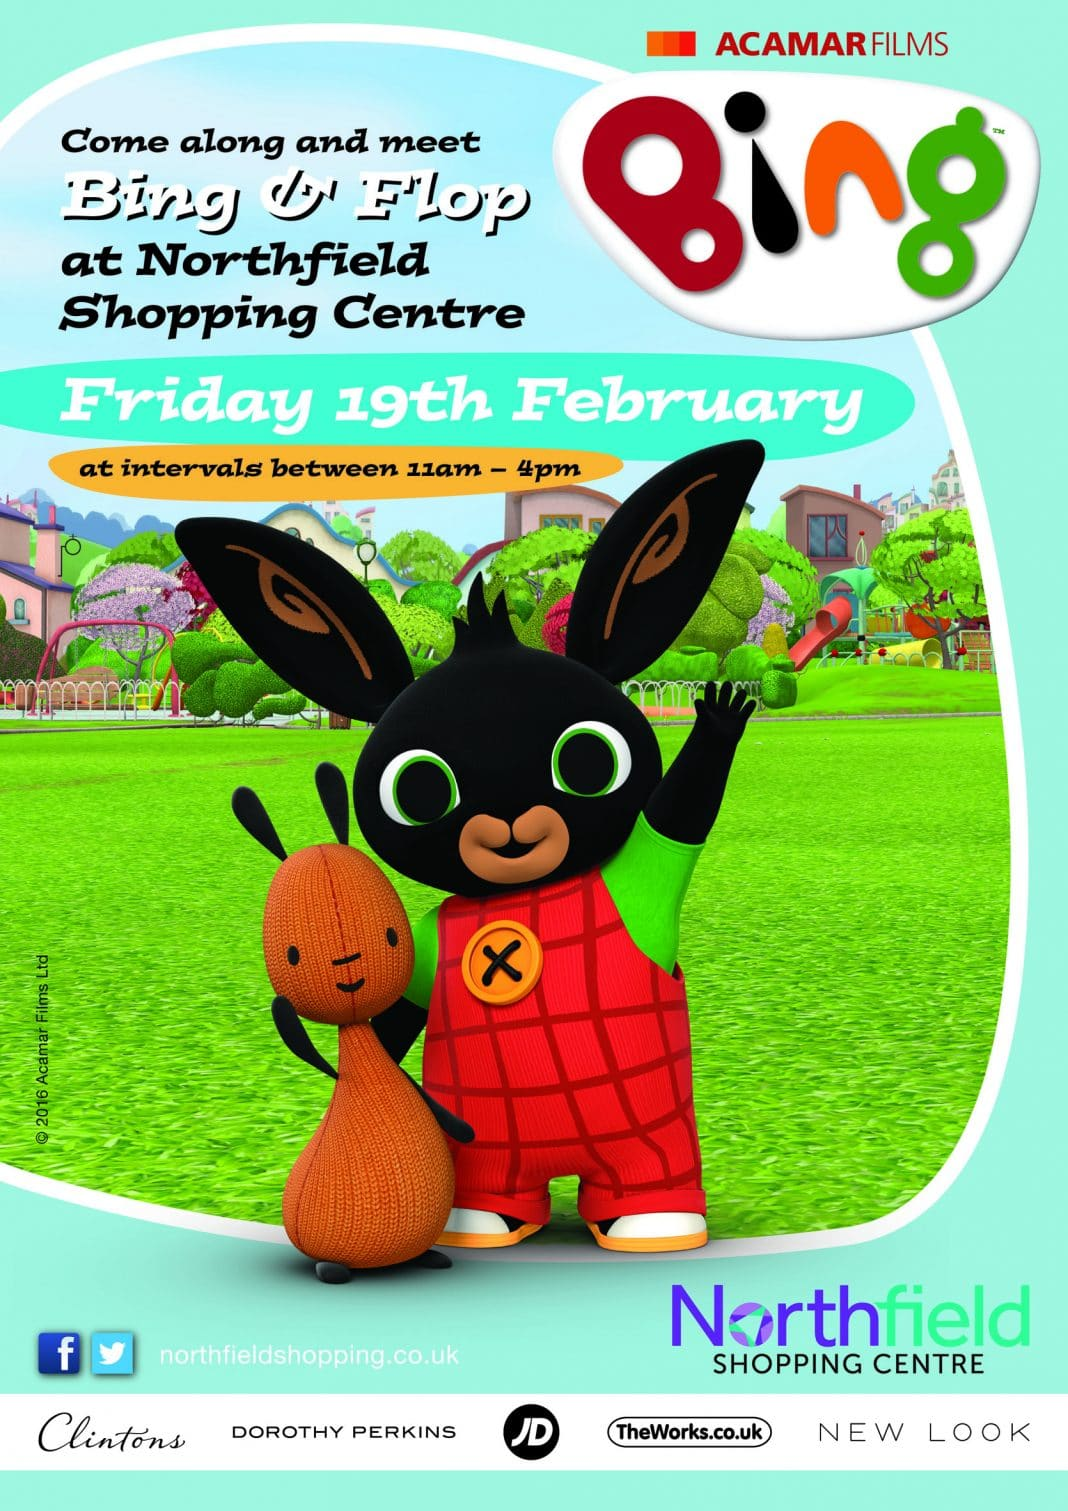 Children's favourites Bing and Flop, who will appearing at Northfield Shopping Centre on Friday February 19 at intervals between 11am to 4pm